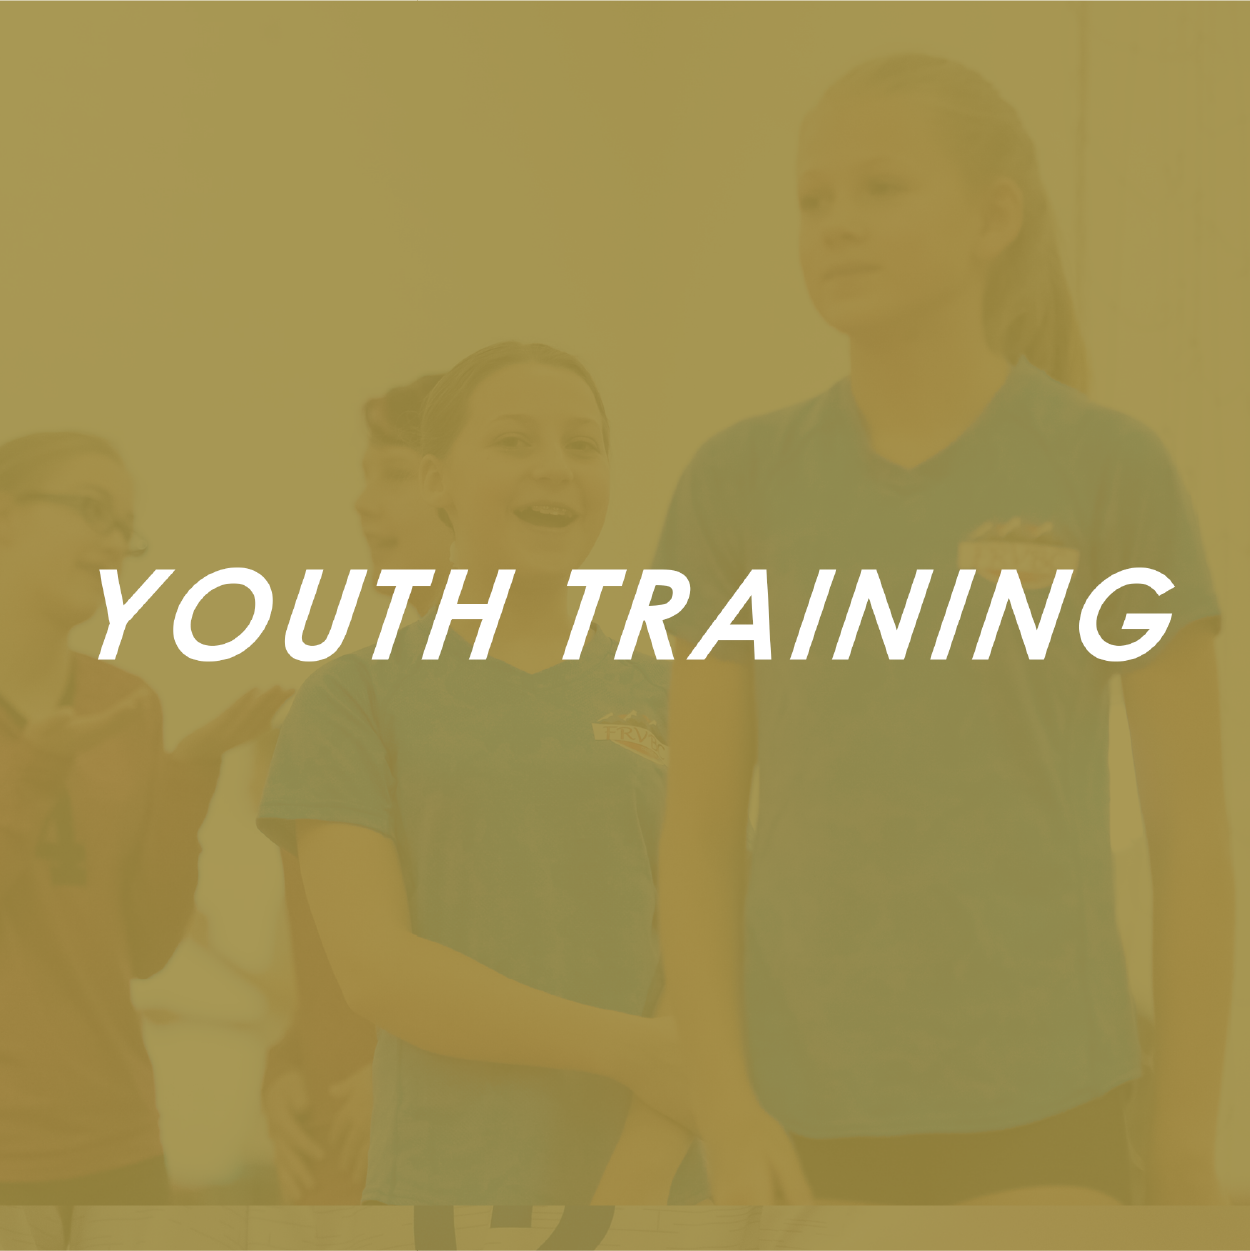 https://frvbc.com/wp-content/uploads/2021/02/FR-BookingsYouth-Training.png